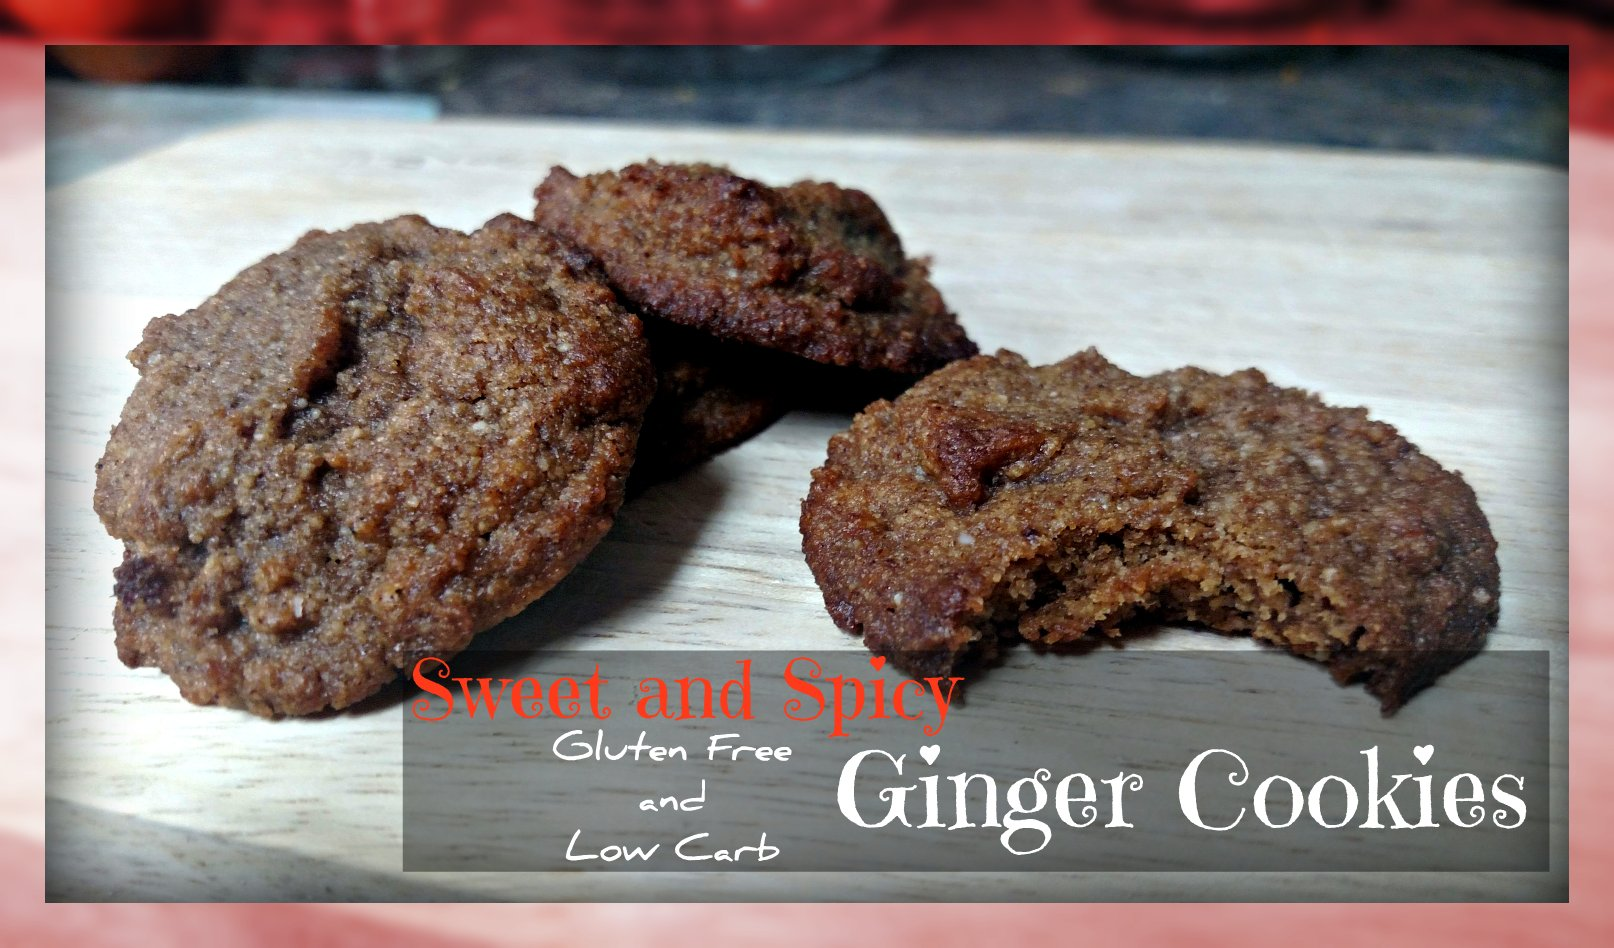 Sweet and Spicy Low Carb Ginger Cookies Recipe